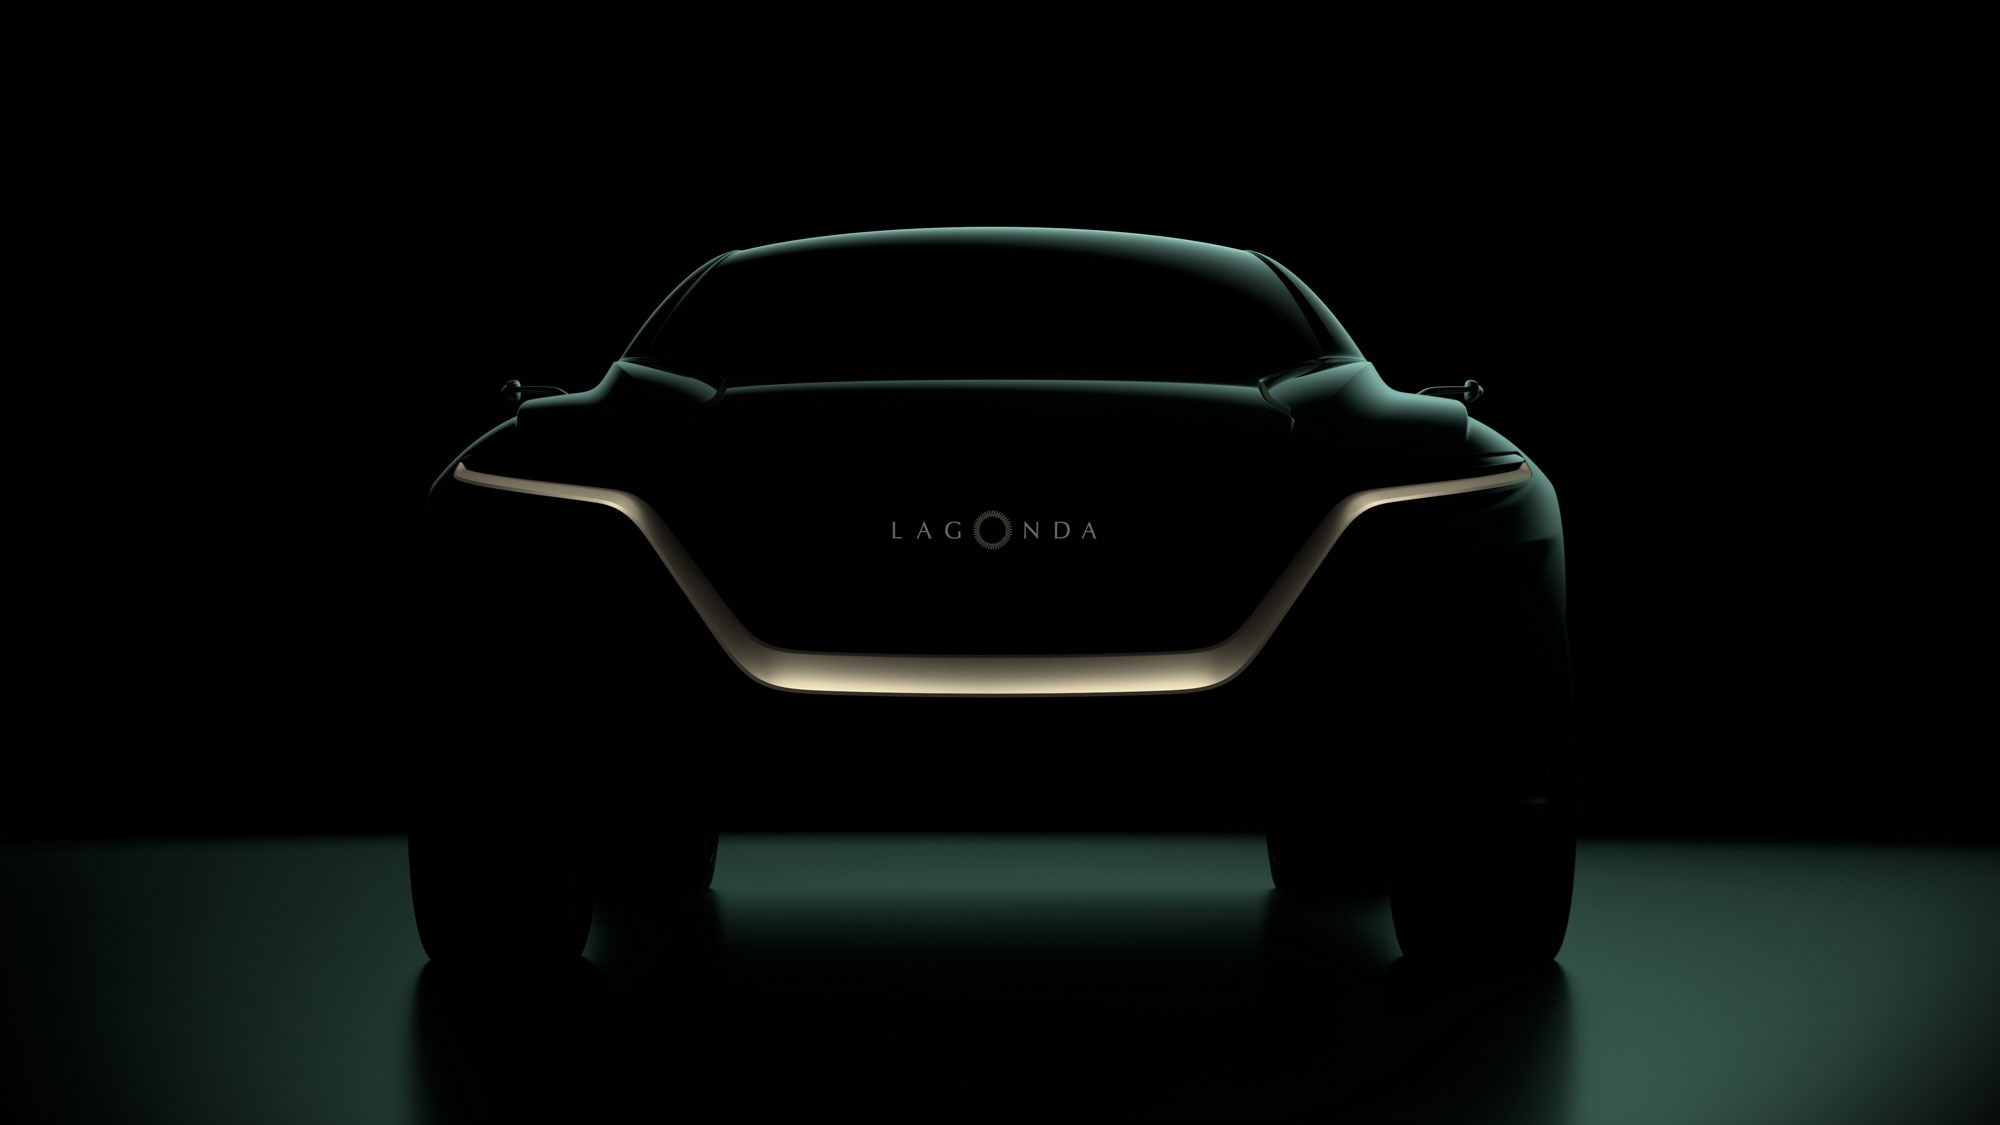 Lagonda All-Terrain Concept: Aston Martin electric SUV teased before Geneva